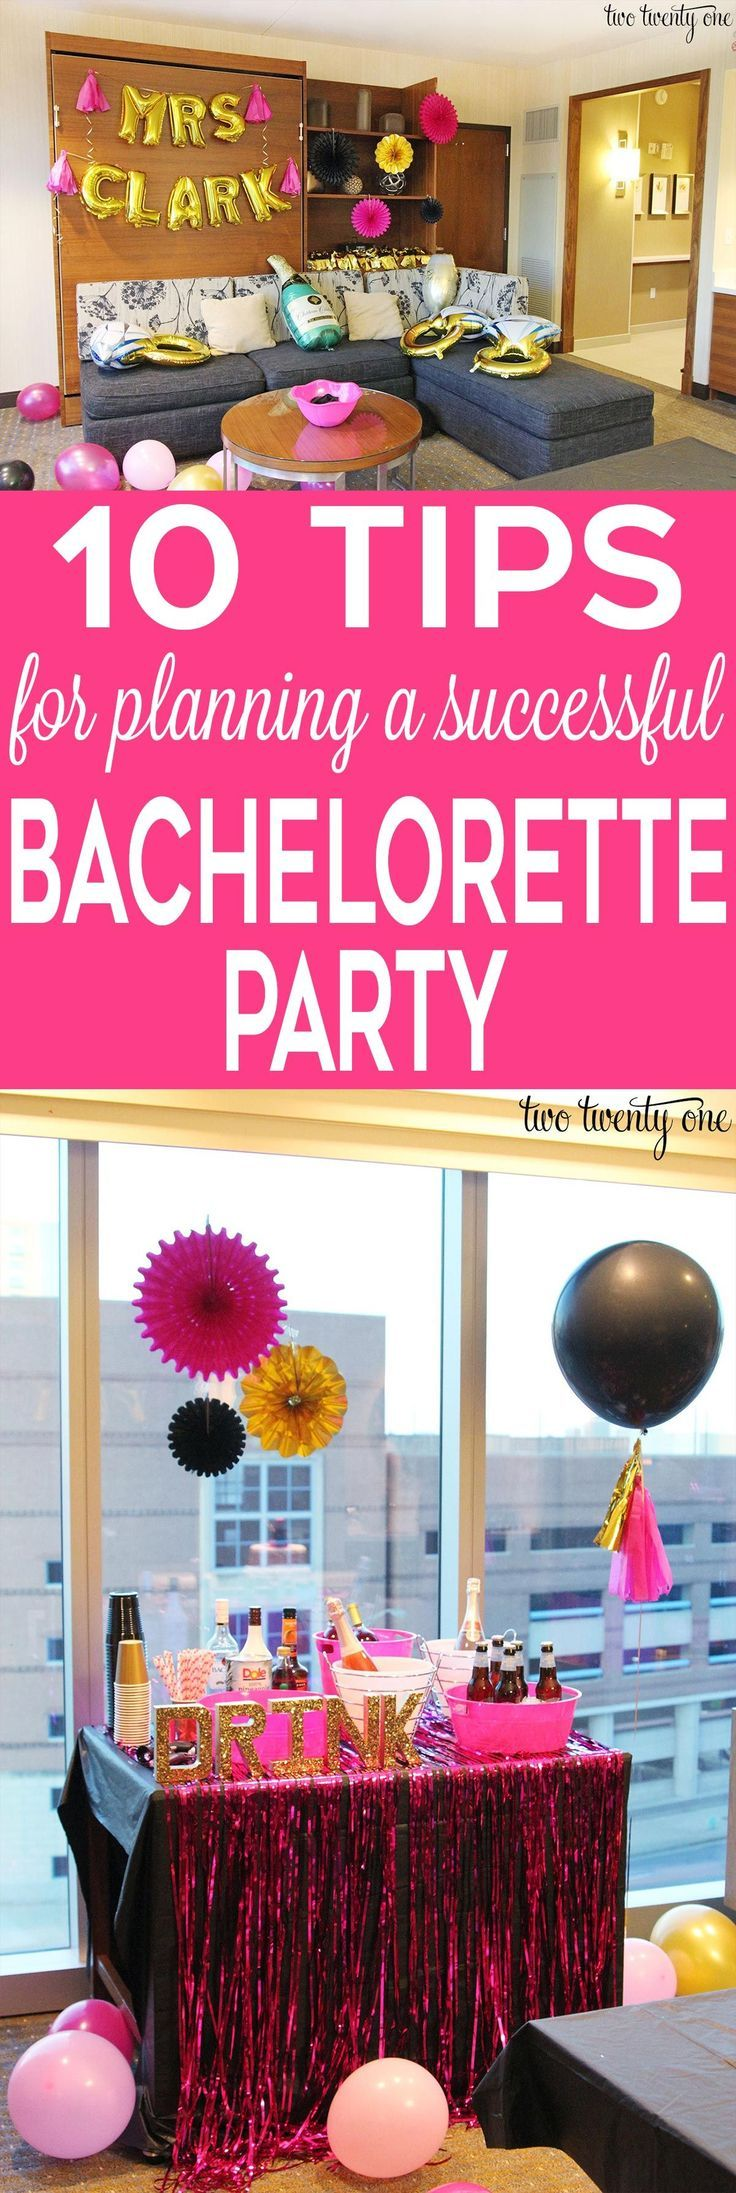 funny bachelorette party sayings for invitations%0A Best Ideas DIY and Crafts Inspiration   Illustration Description    tips  for planning a successful bachelorette party